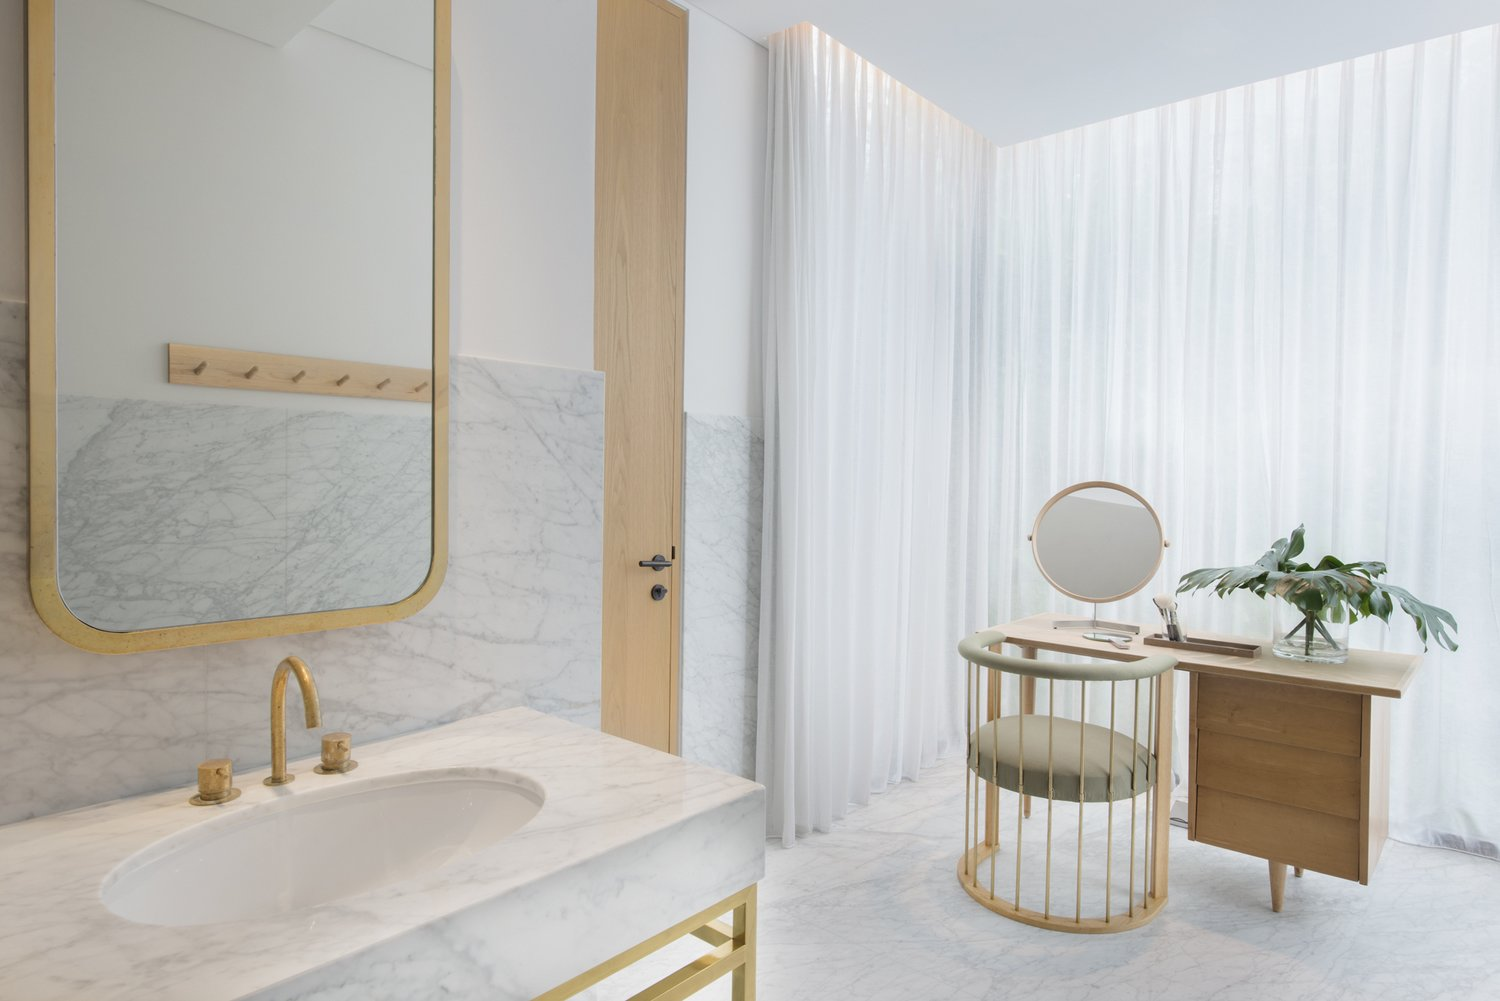 Bath Room, Undermount Sink, Marble Wall, Marble Counter, and Marble Floor  Photo 6 of 10 in The Light and Airy Apartment G in Downtown Singapore